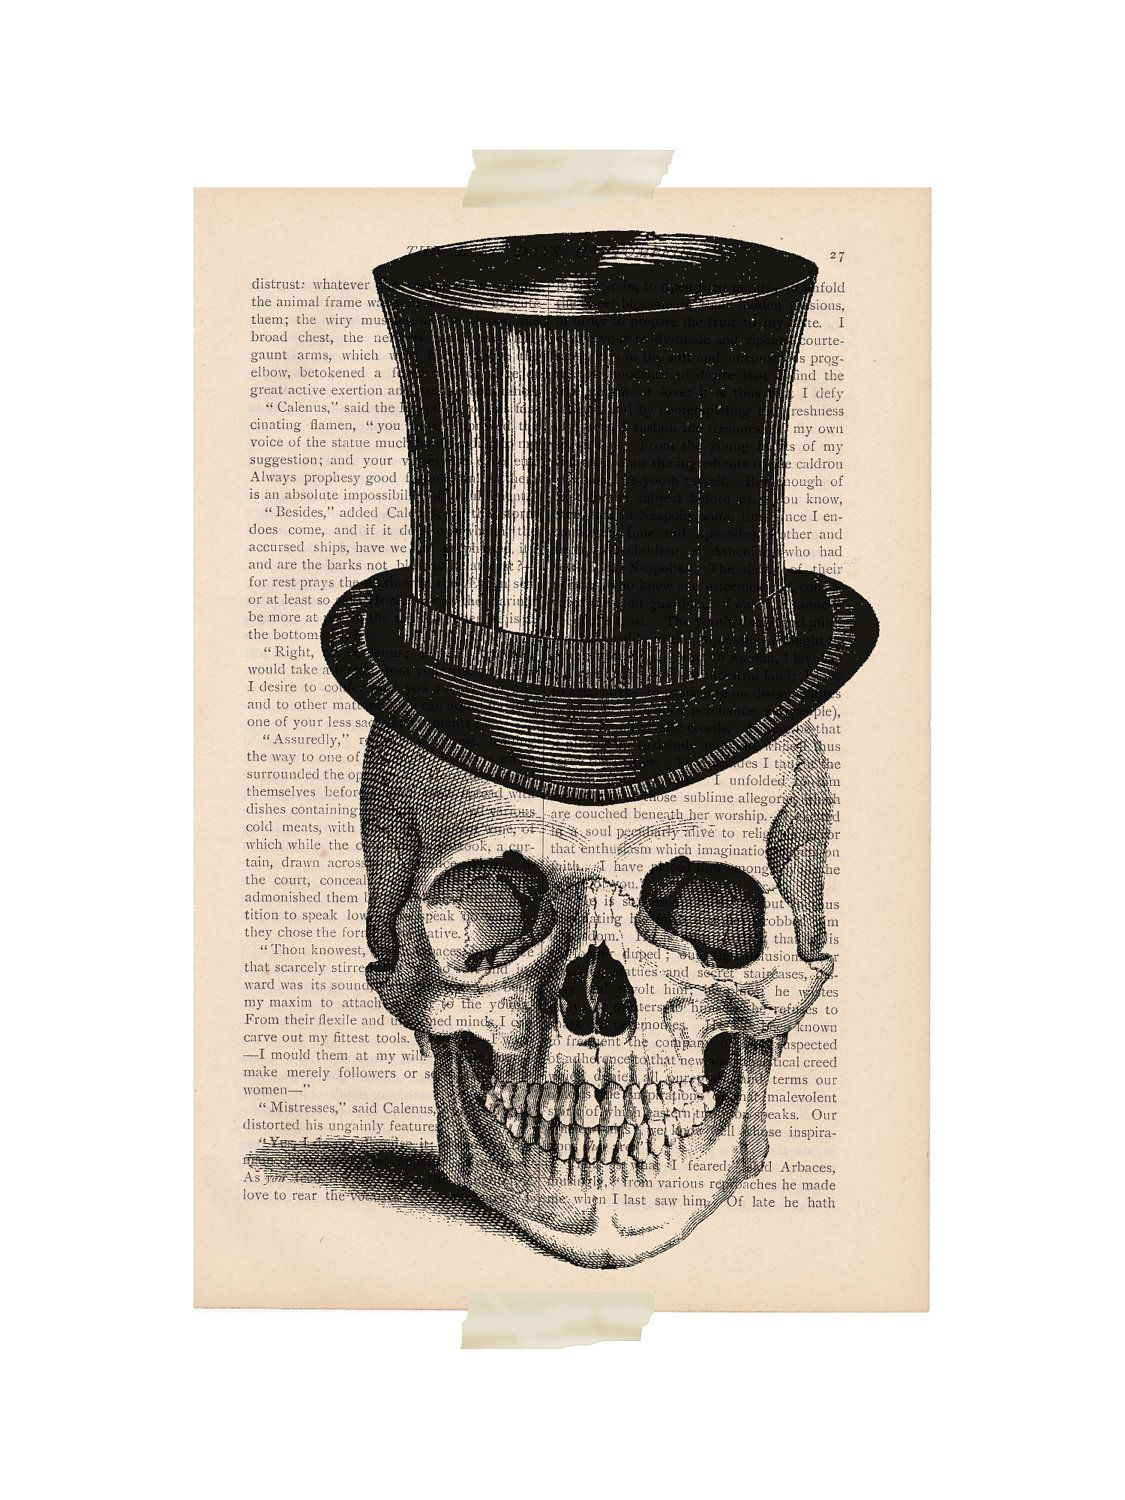 Halloween skull decorations - Halloween Decorations Skull Dictionary Art Vintage Skull With Top Hat Print Book Page Print